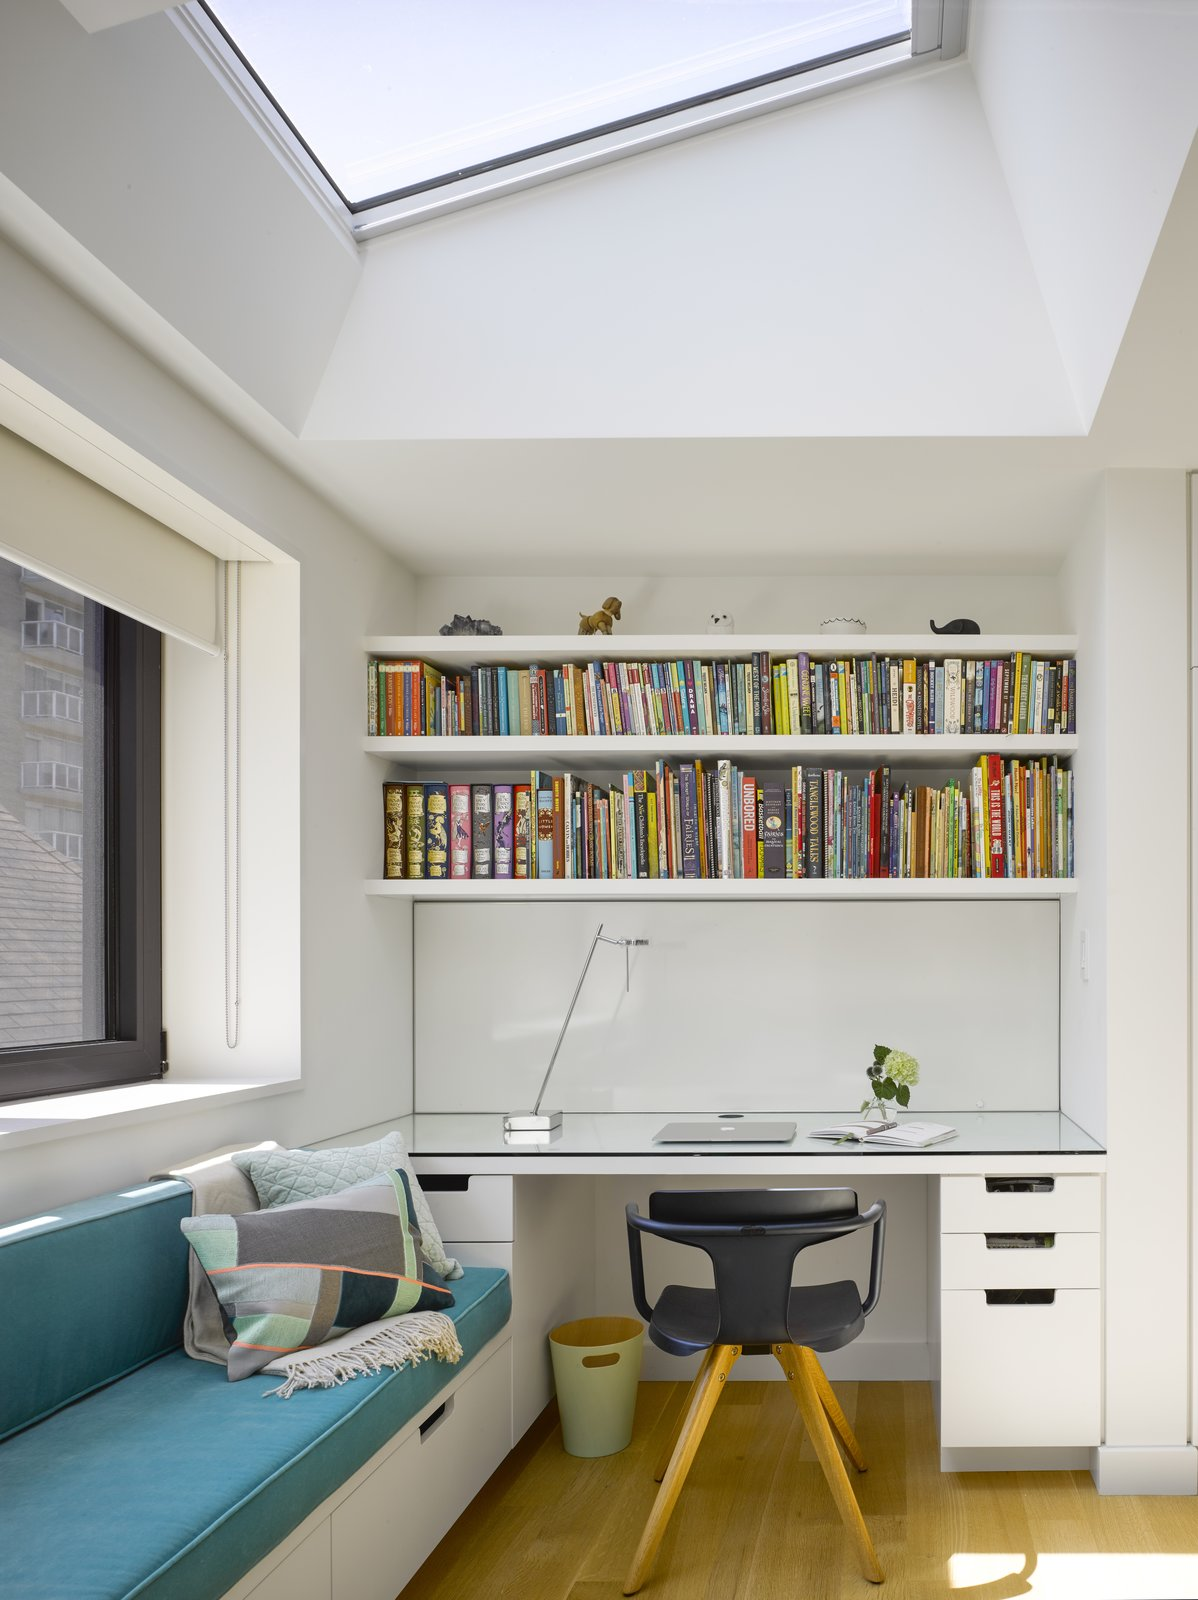 Office, Desk, Light Hardwood Floor, Study Room Type, Shelves, Storage, Bookcase, Chair, and Lamps A detail of the office nooks with a teal daybed and built-in shelving.   Photos from An Elegant Edwardian Home Is Treated to a Thoughtful Revamp